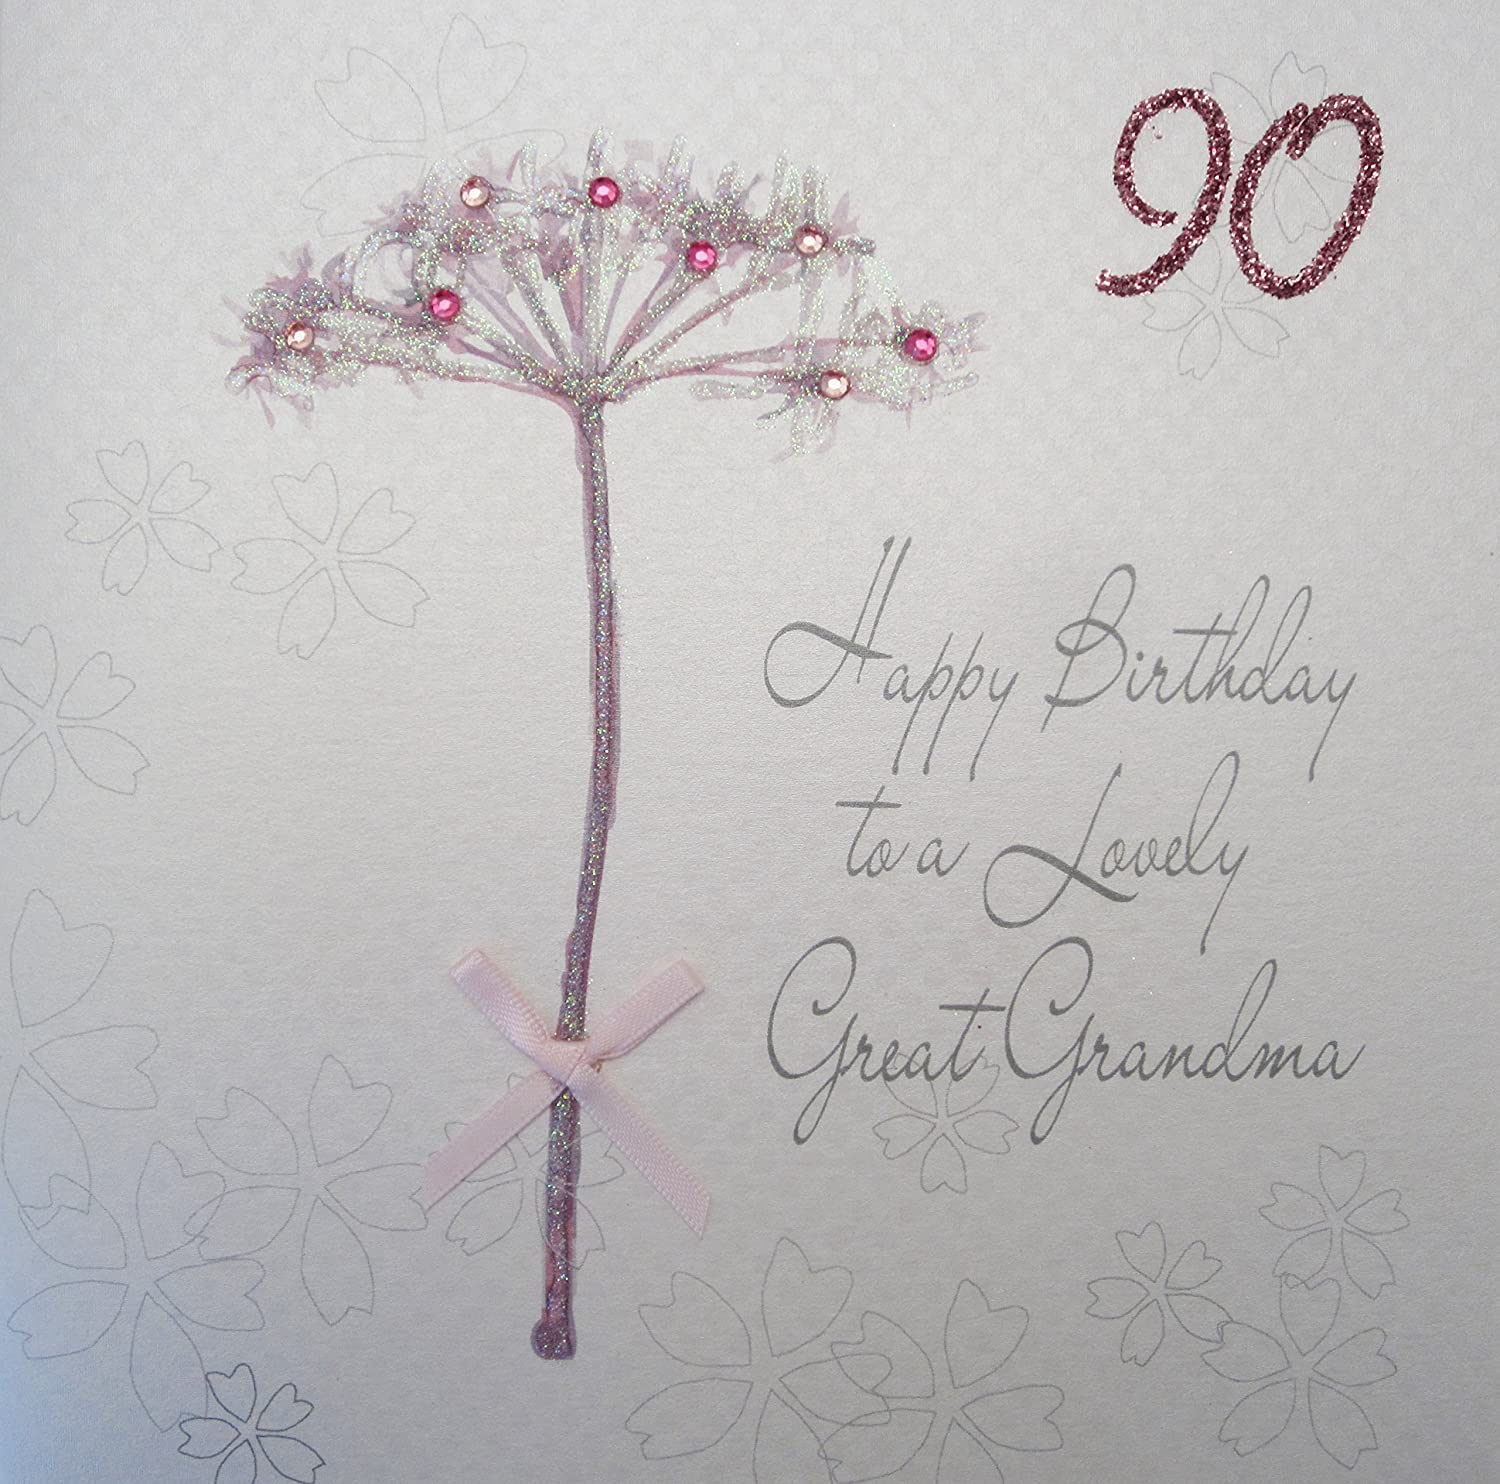 WHITE COTTON CARDS Happy Lovely Grandma 90 Handmade 90th Birthday Card Dandelion Amazoncouk Kitchen Home